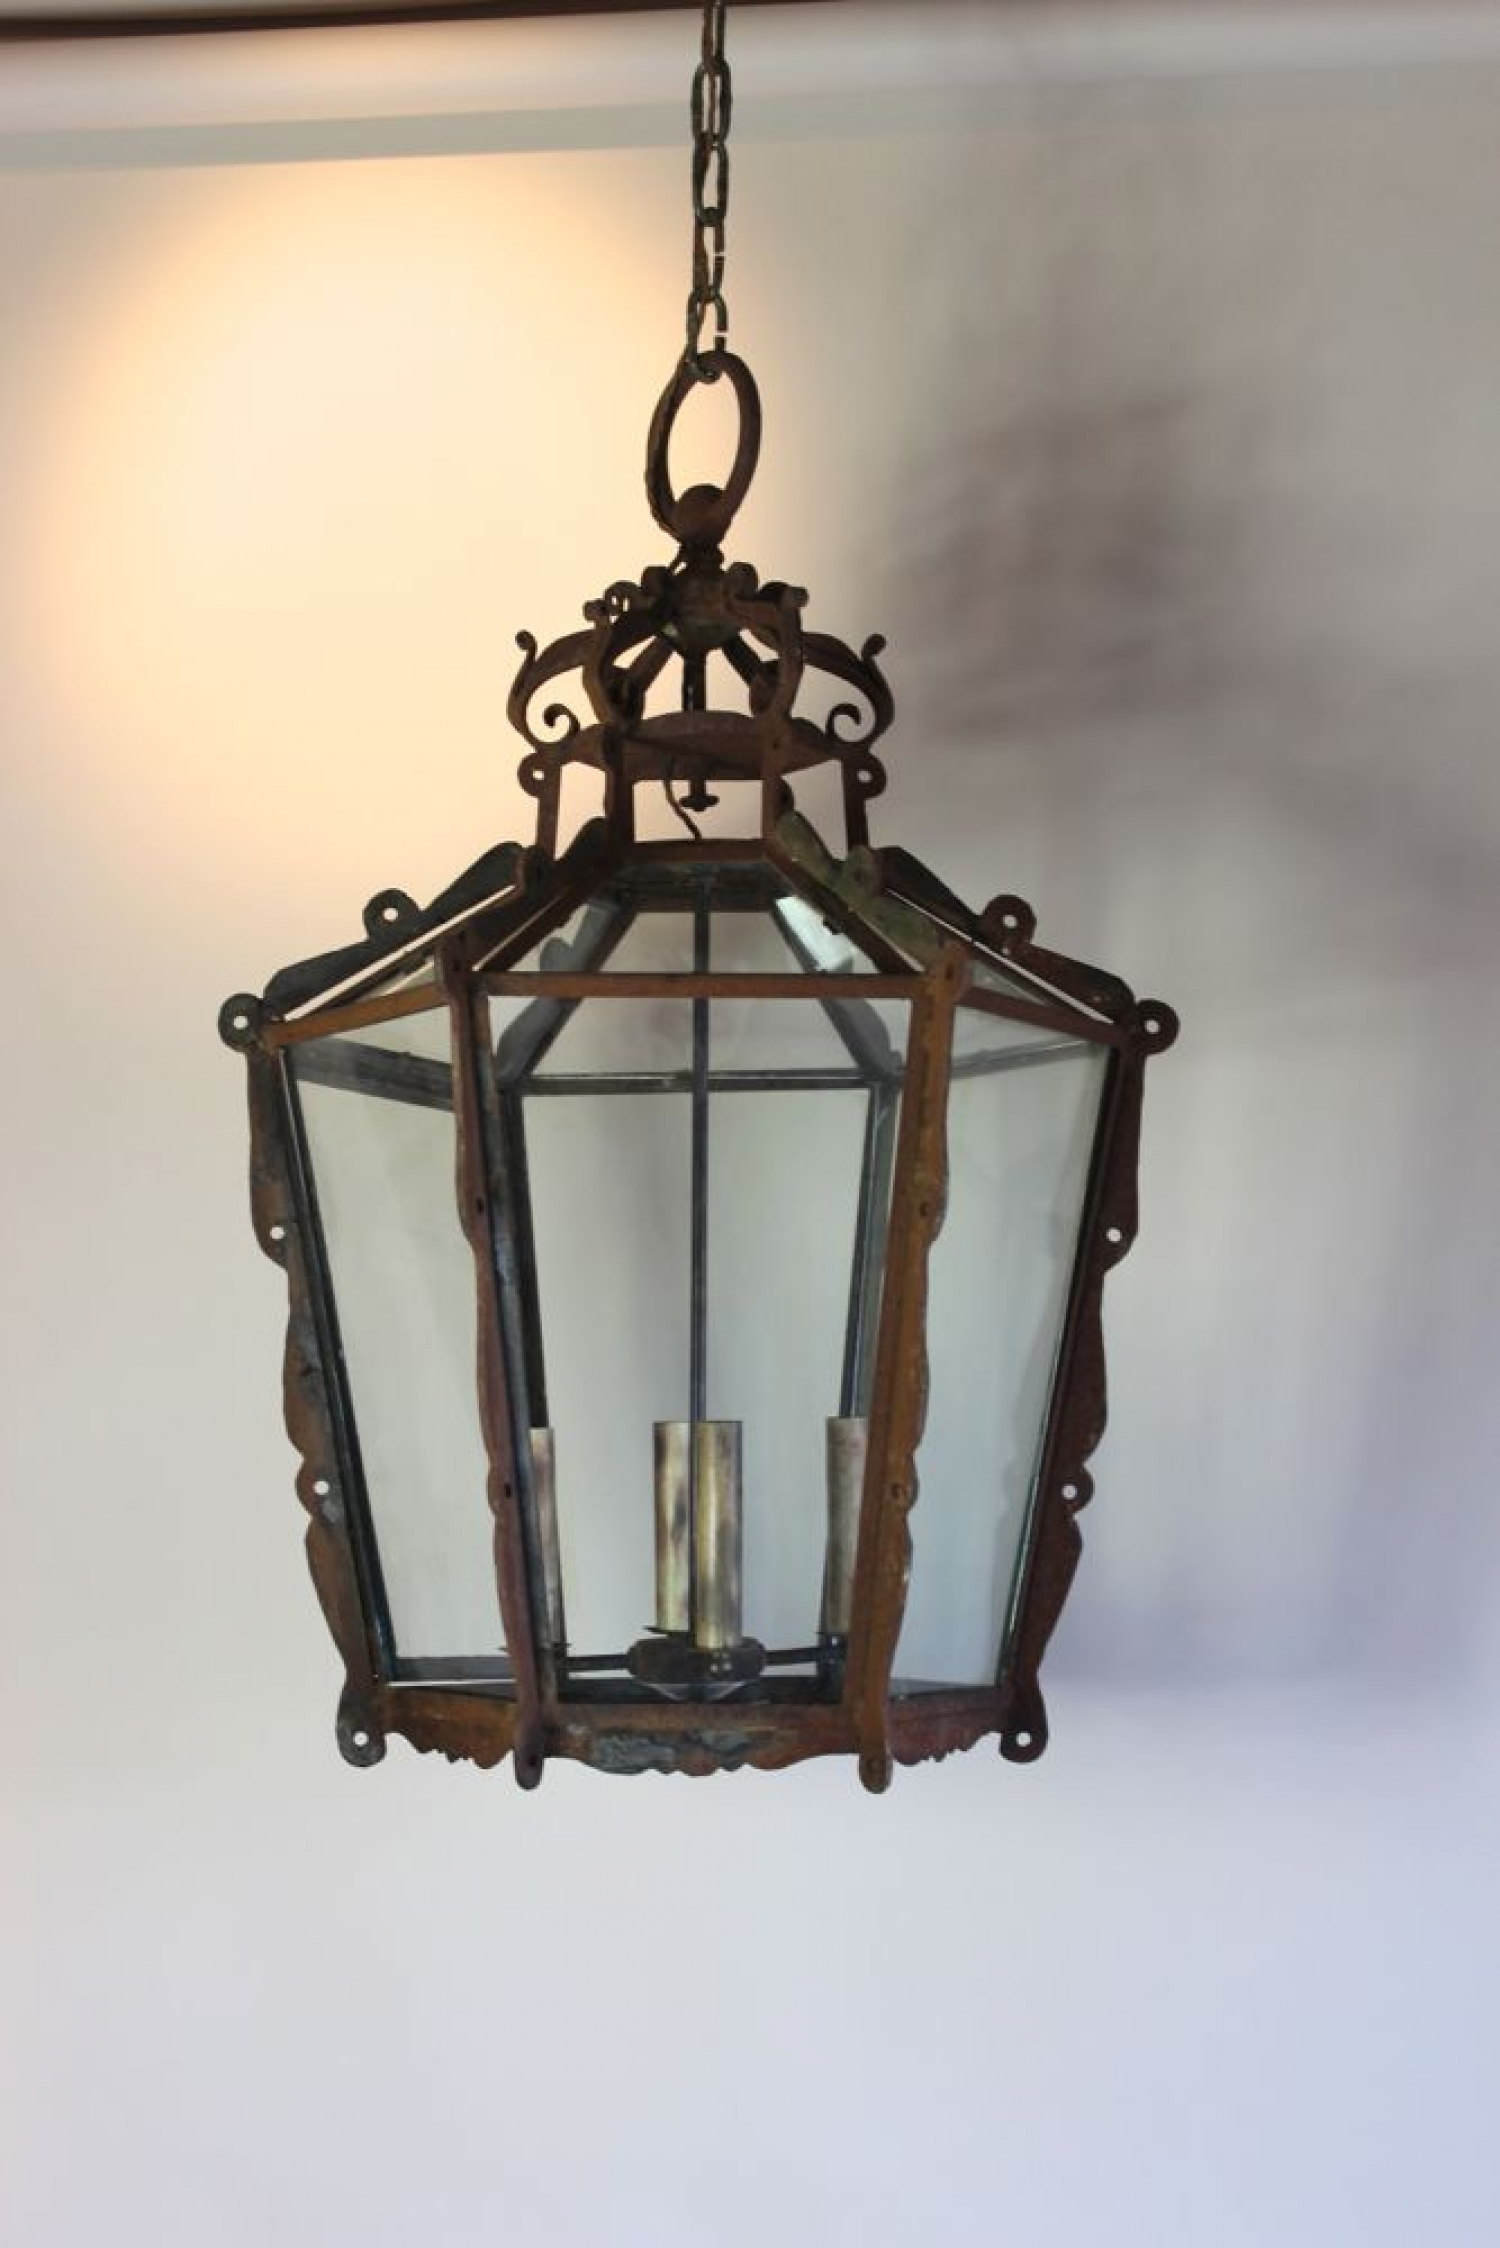 Wall Lights Suitable Conservatory : CONSERVATORY LIGHTING Norfolk Decorative Antiques - Wall lights, LED bathroom & bedroom lighting ...